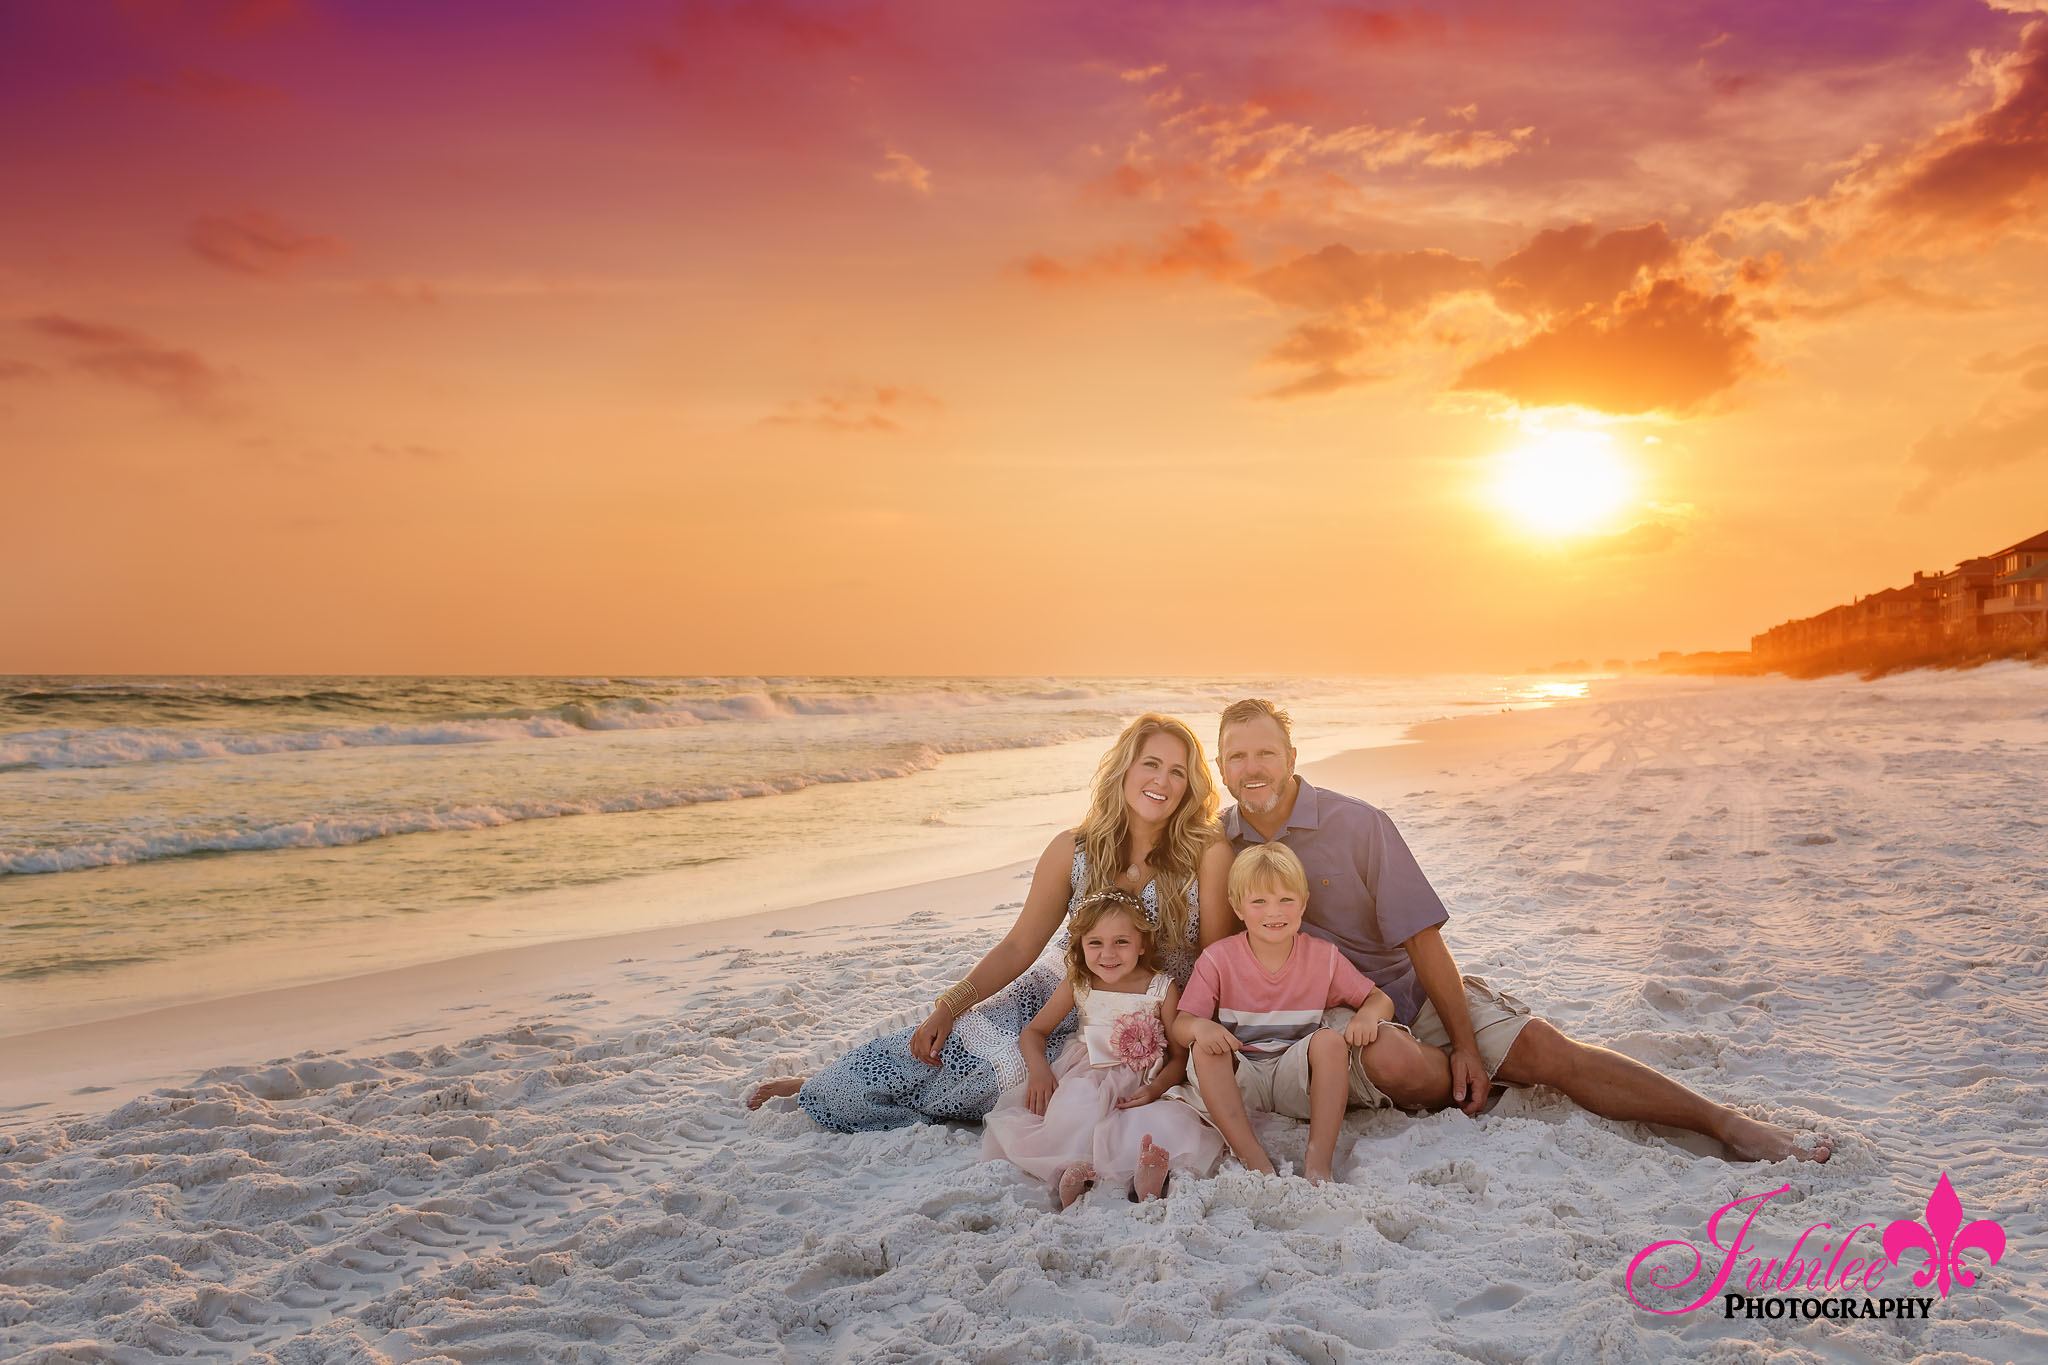 destin_beach_photographer_6193